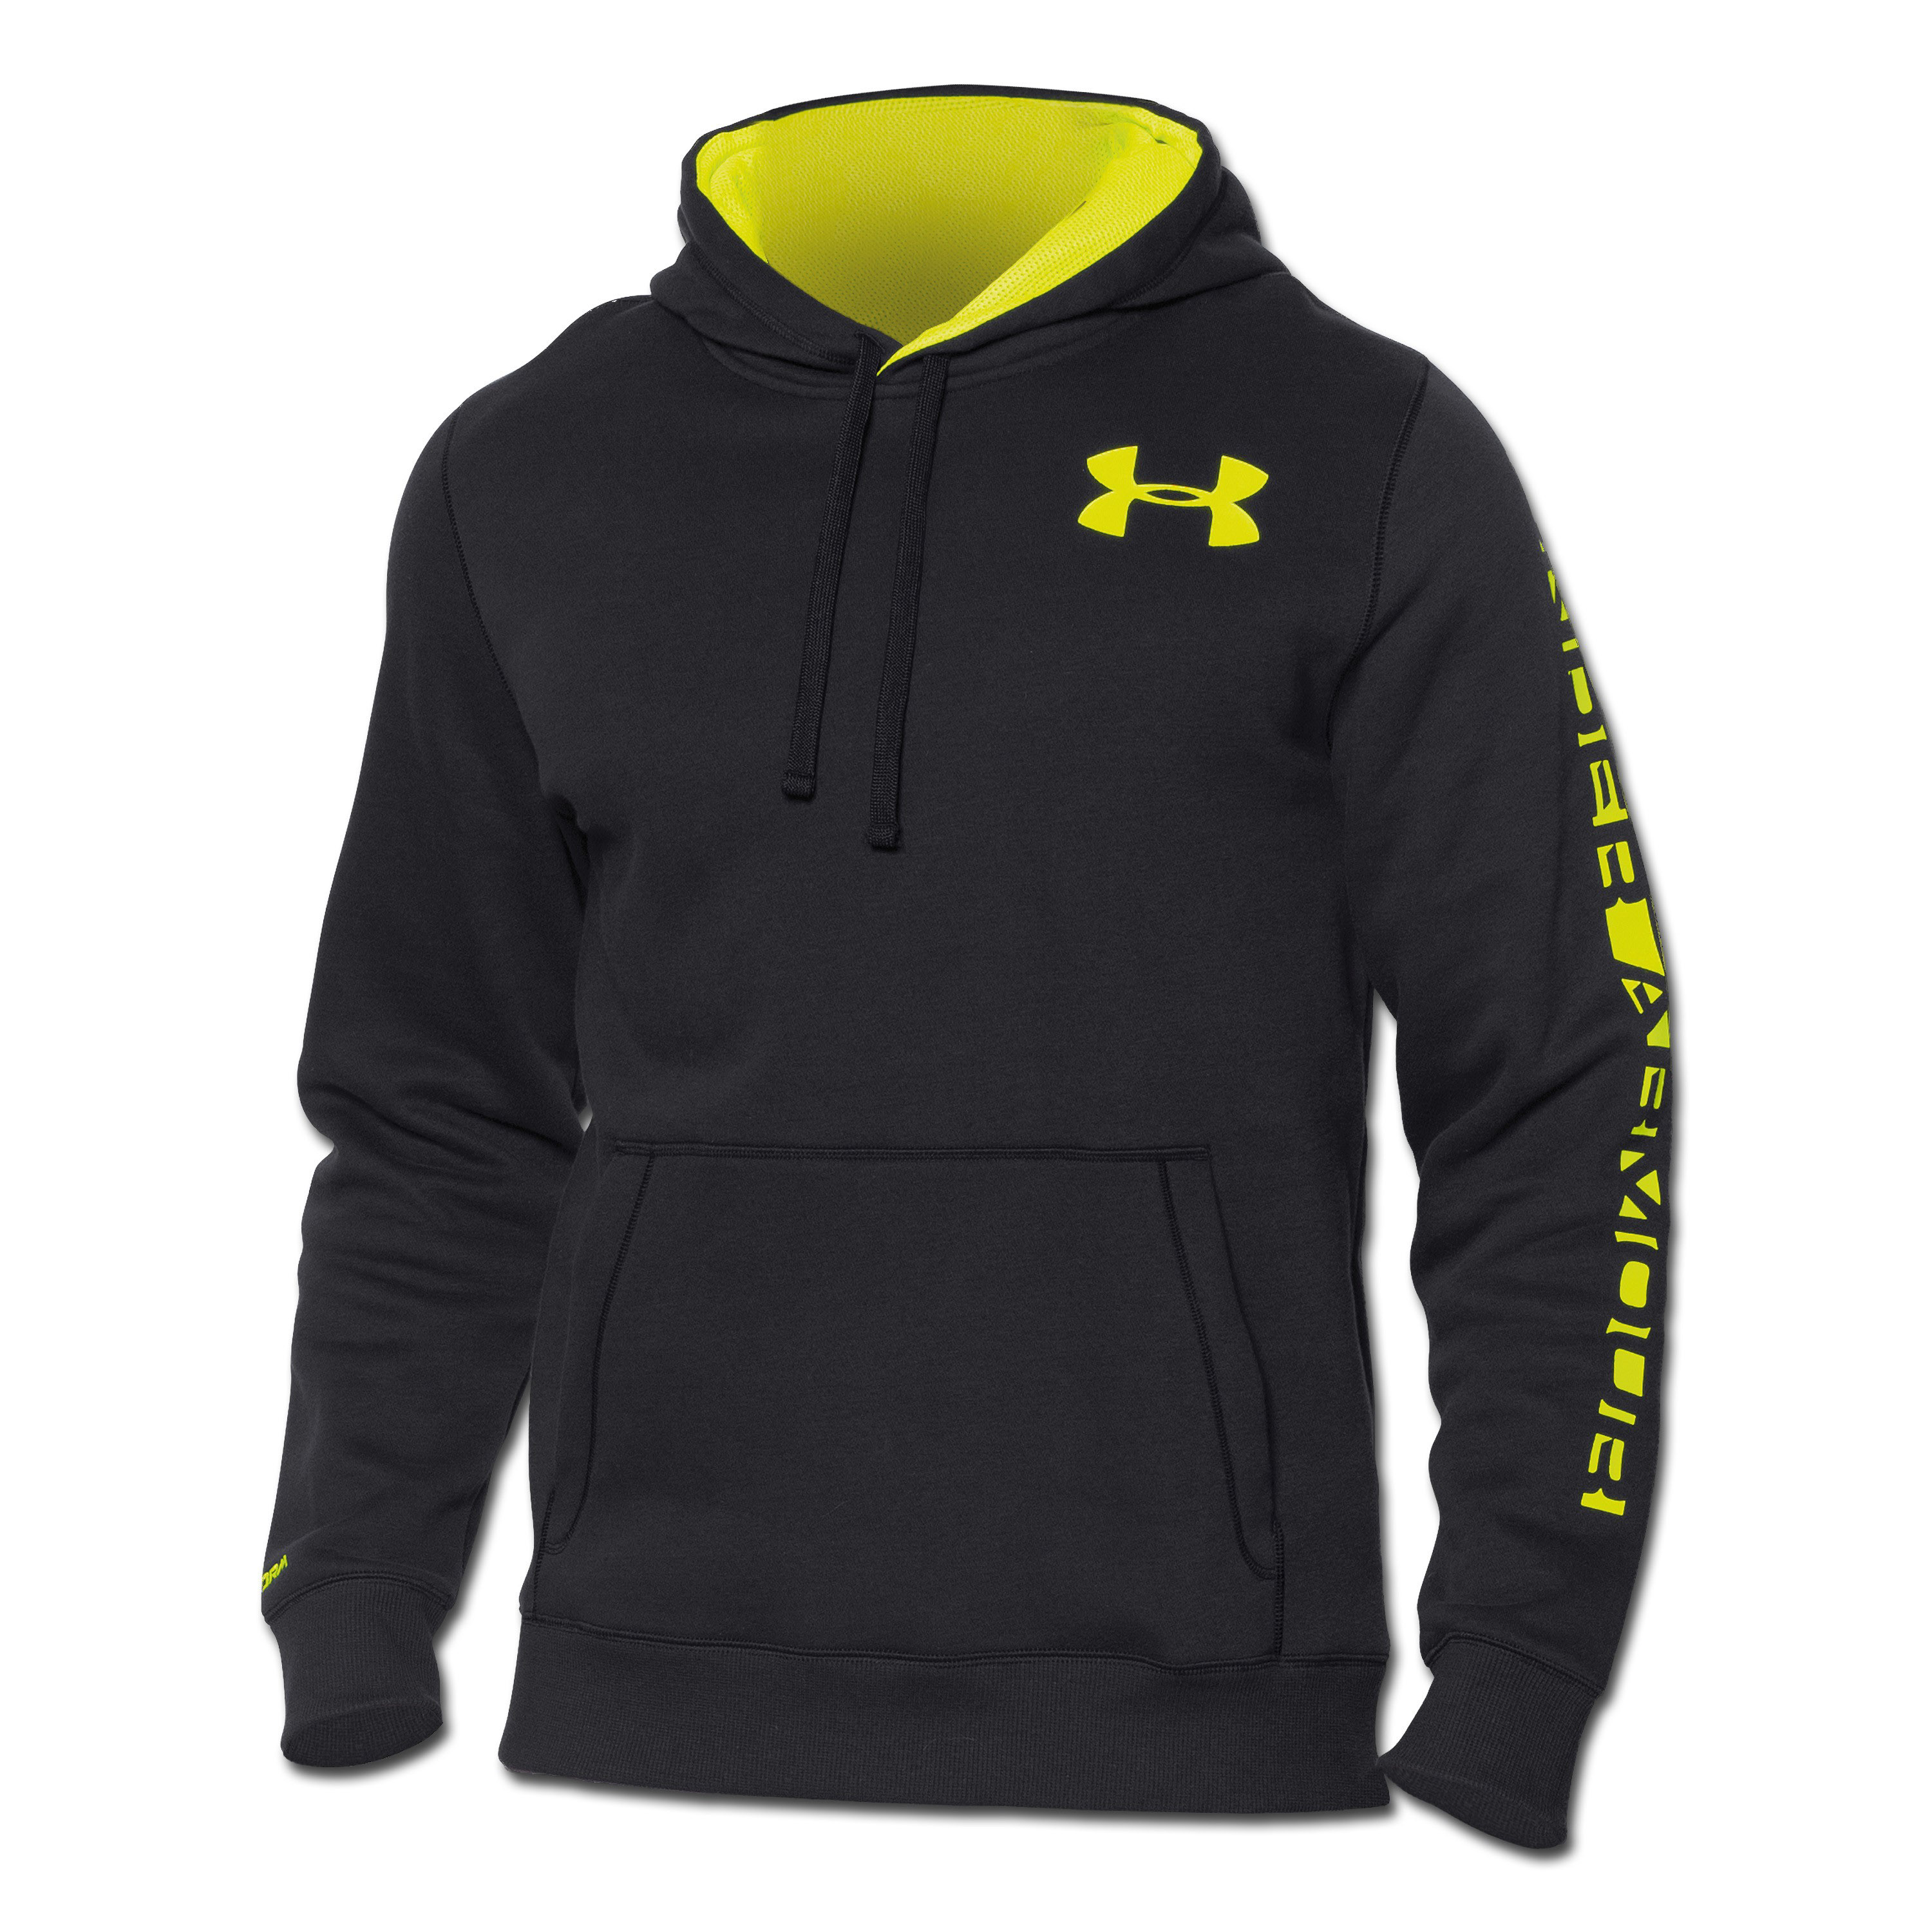 Under Armour Rival Cotton Graphic Hoody black